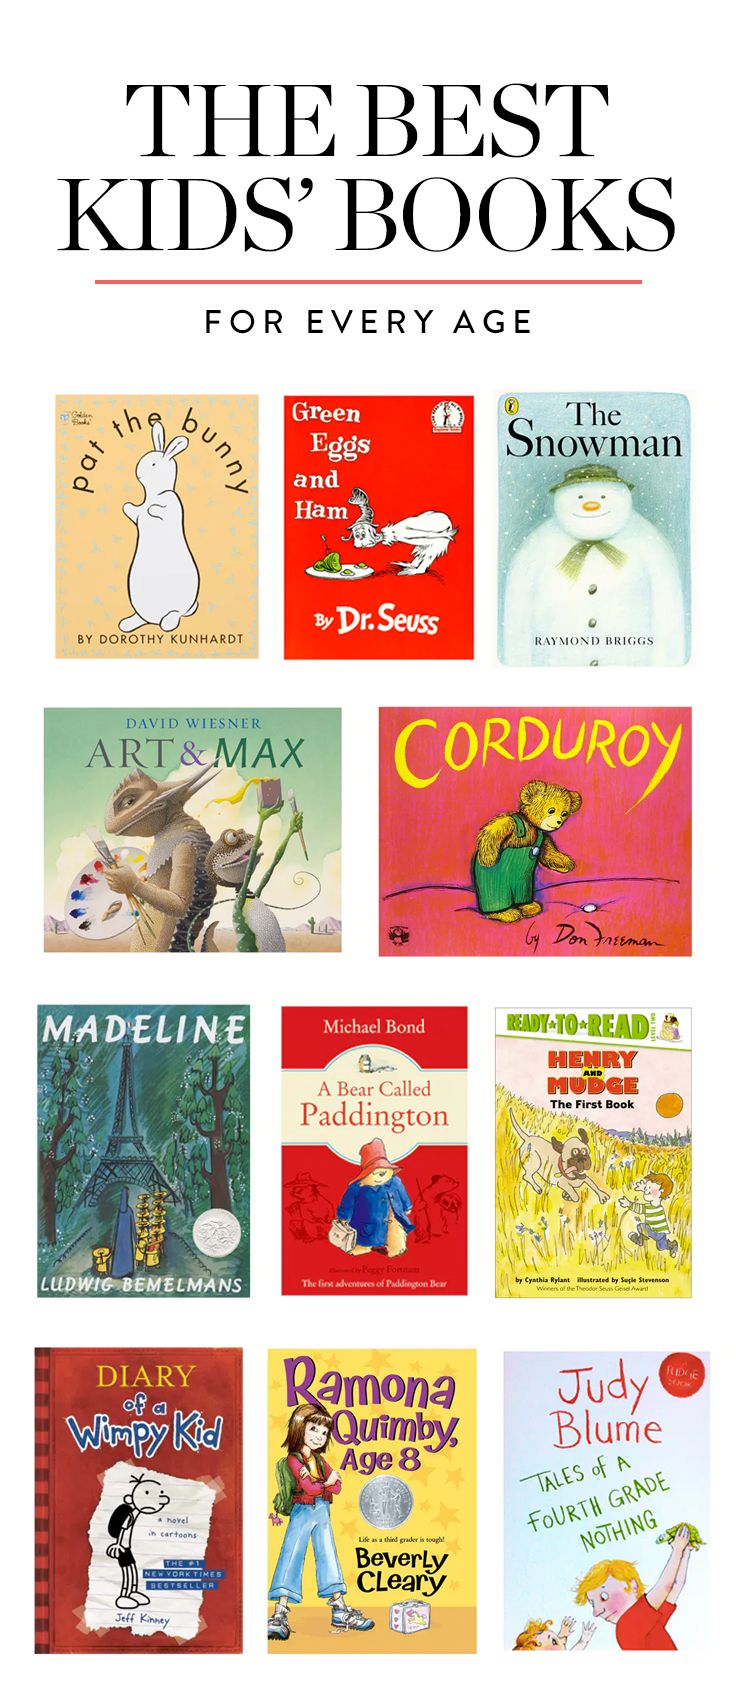 The Best Kids' Books For Every Age (From 1 to 15) via @PureWow